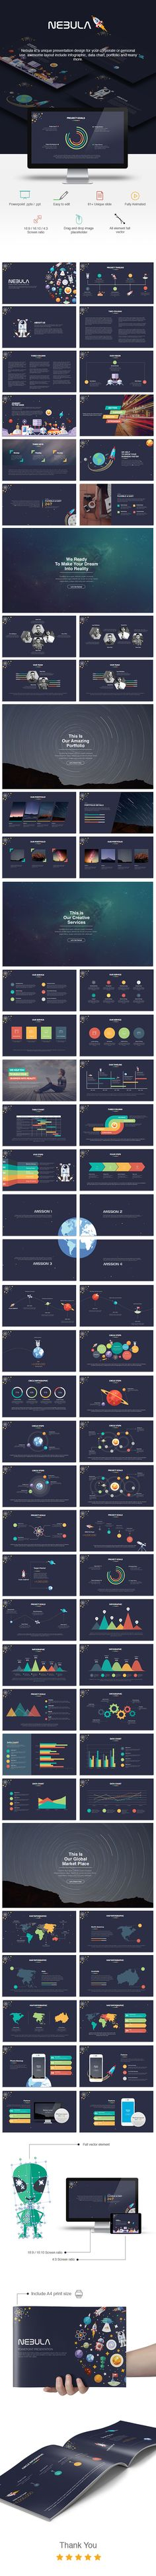 Nebula Powerpoint Presentation Template #design #slides Download: http://graphicriver.net/item/nebula-powerpoint-presentation/13684549?ref=ksioks